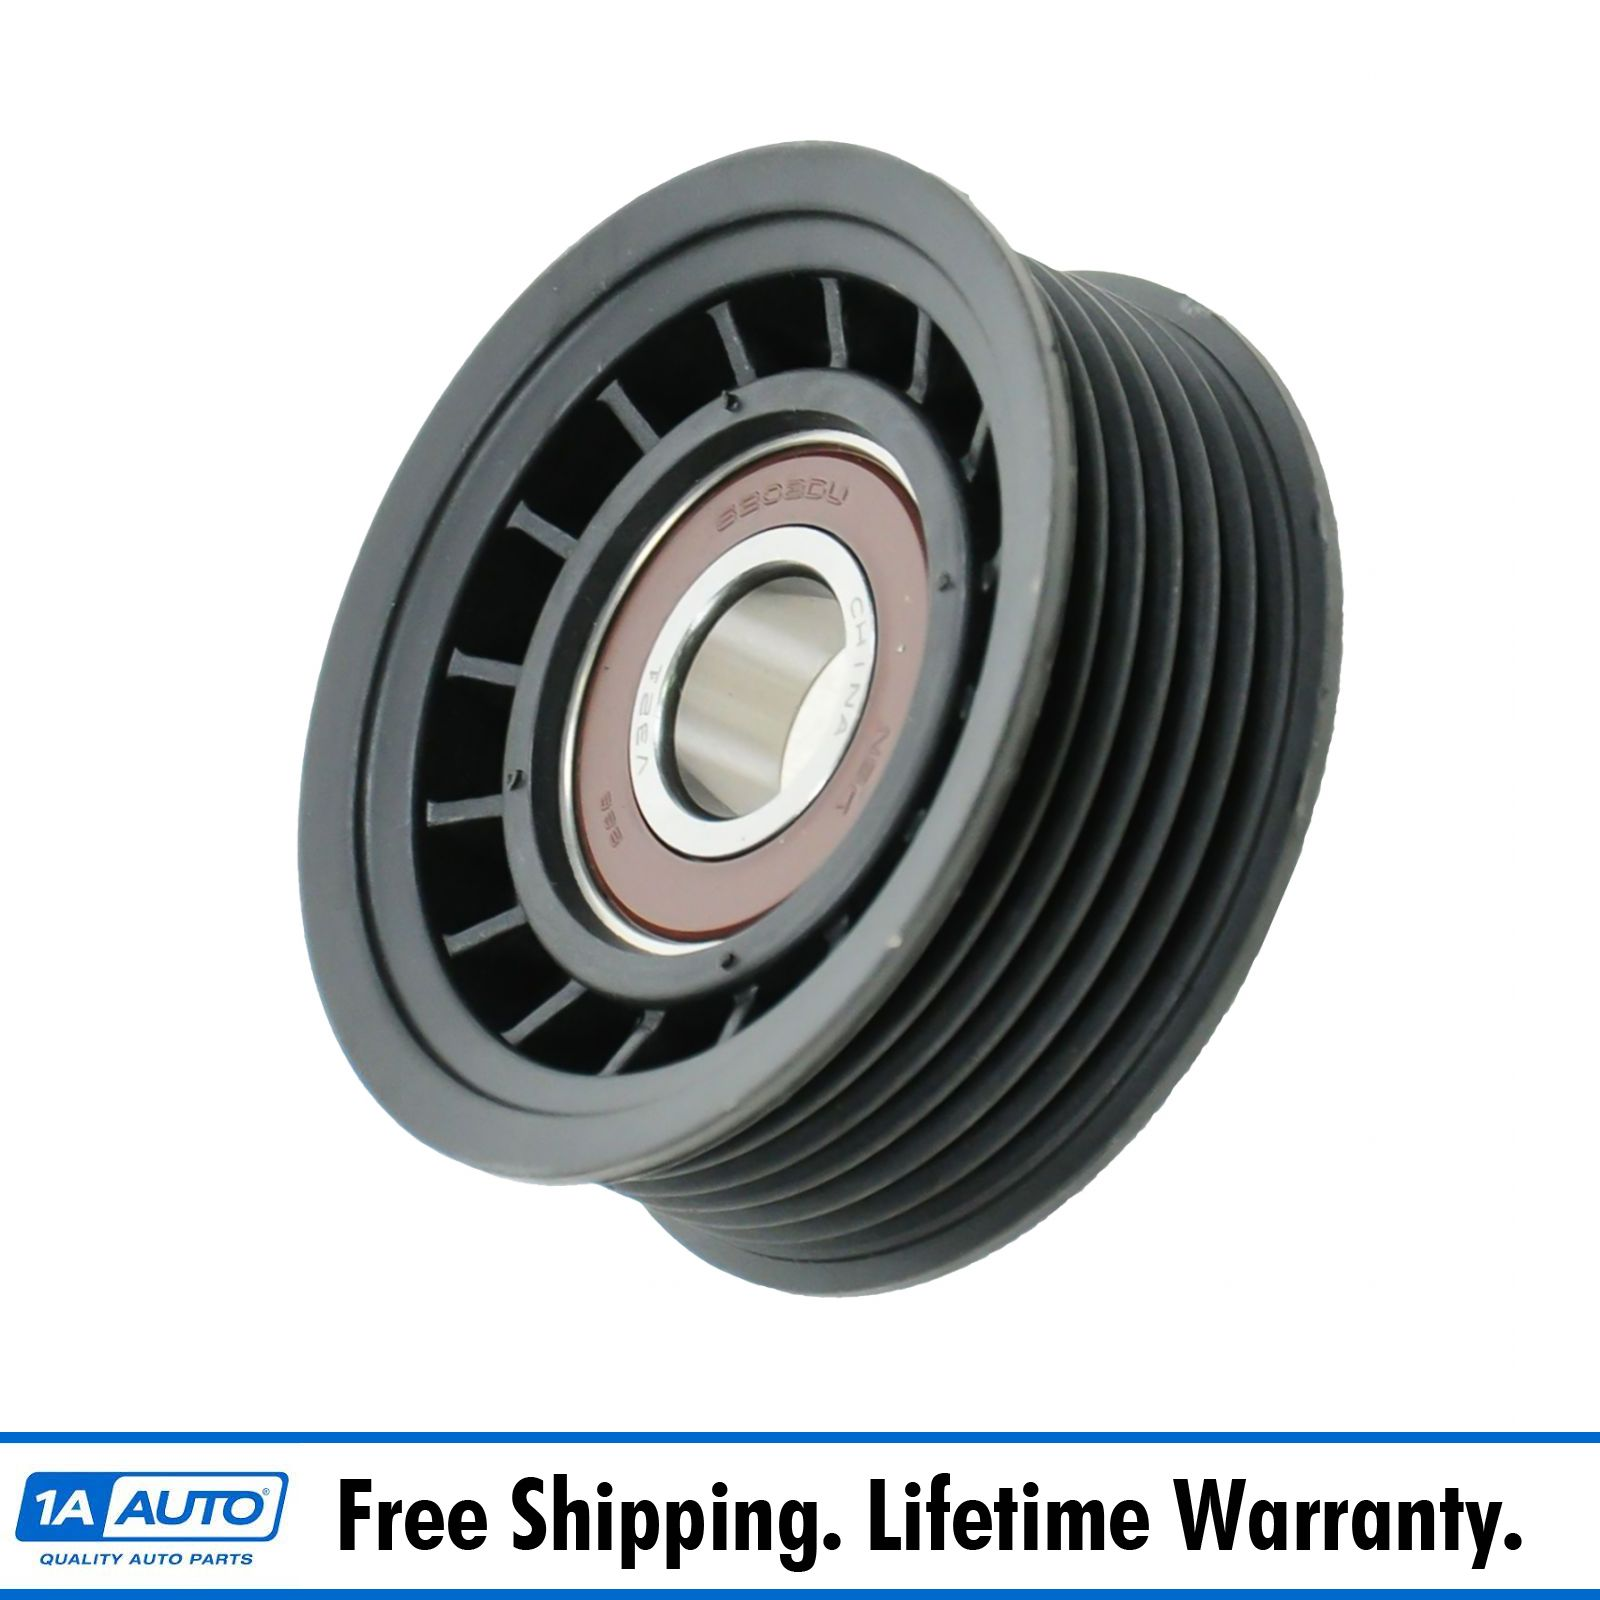 Where Can I Find A Diagram For Serpentine Belt For A 2001 Olds Aurora